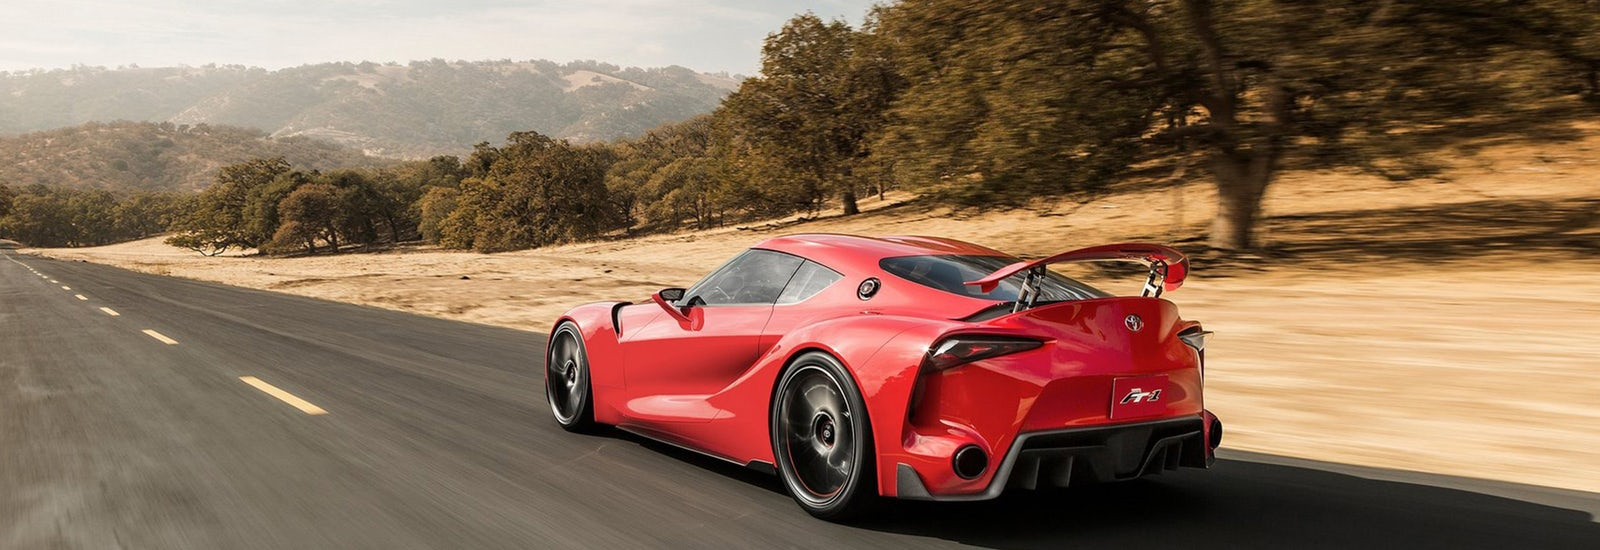 2017 Toyota Supra price, specs & release date | carwow